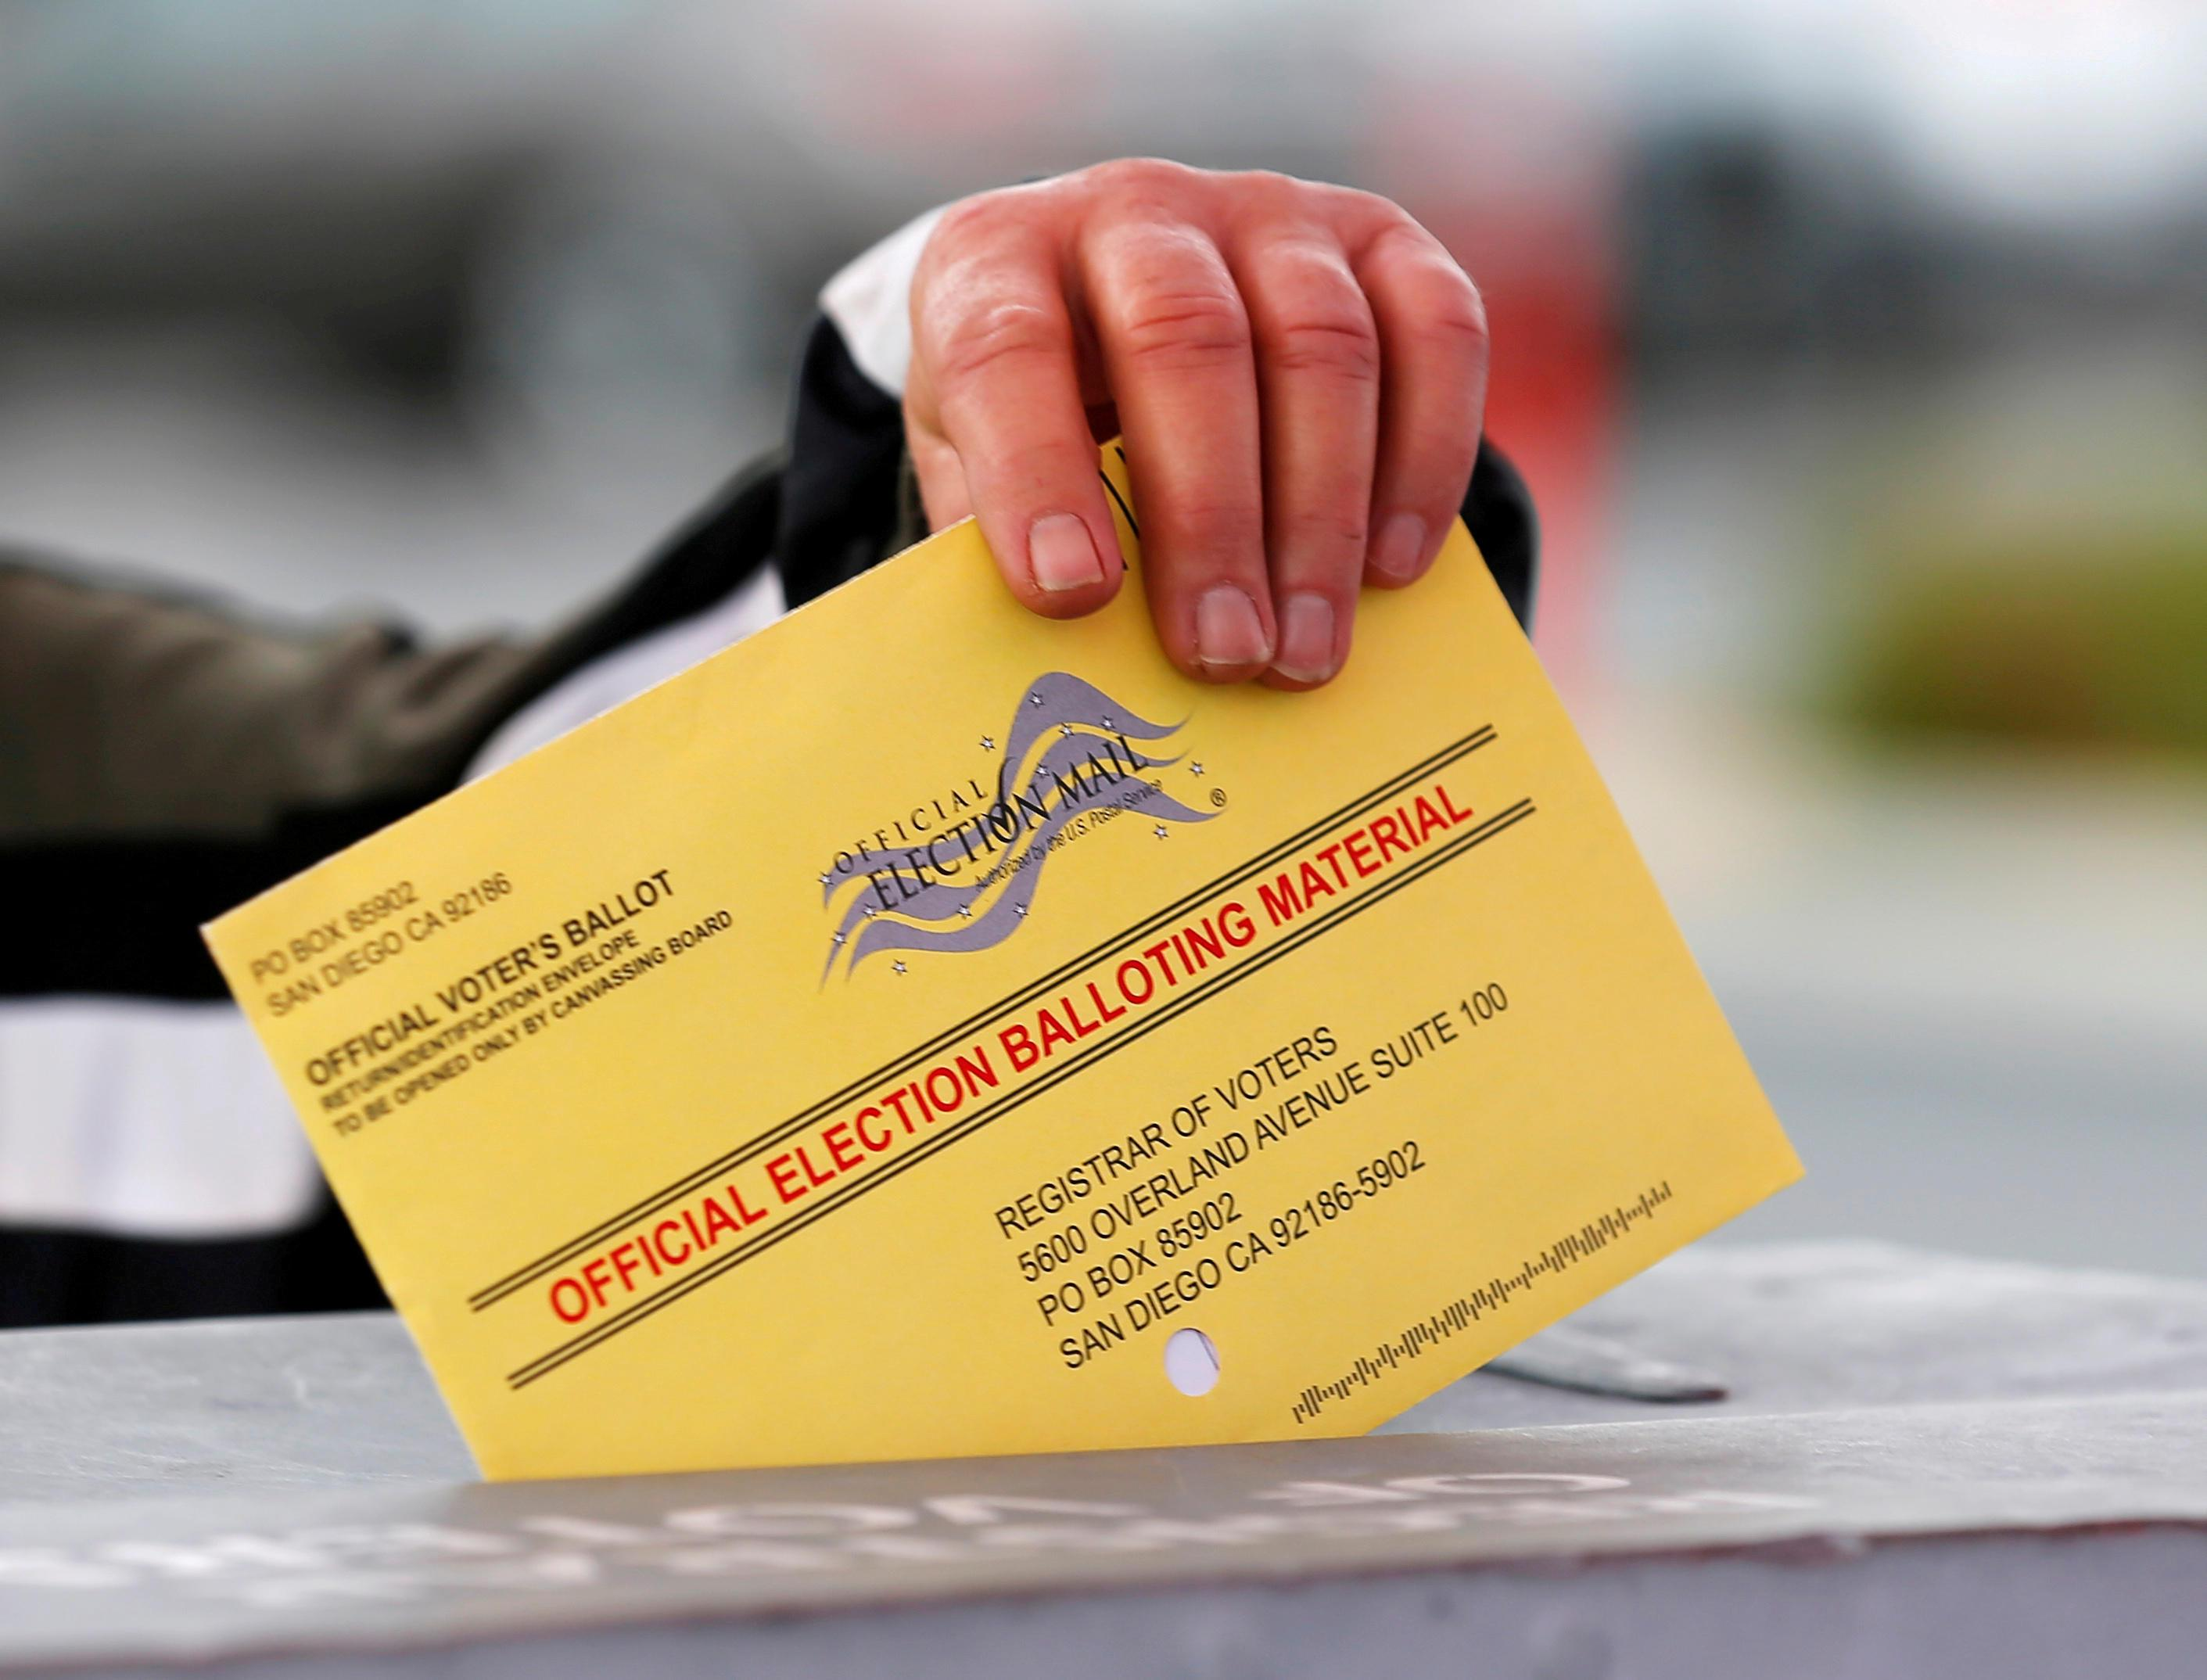 Activists warn mail-in voting is essential but must be done right